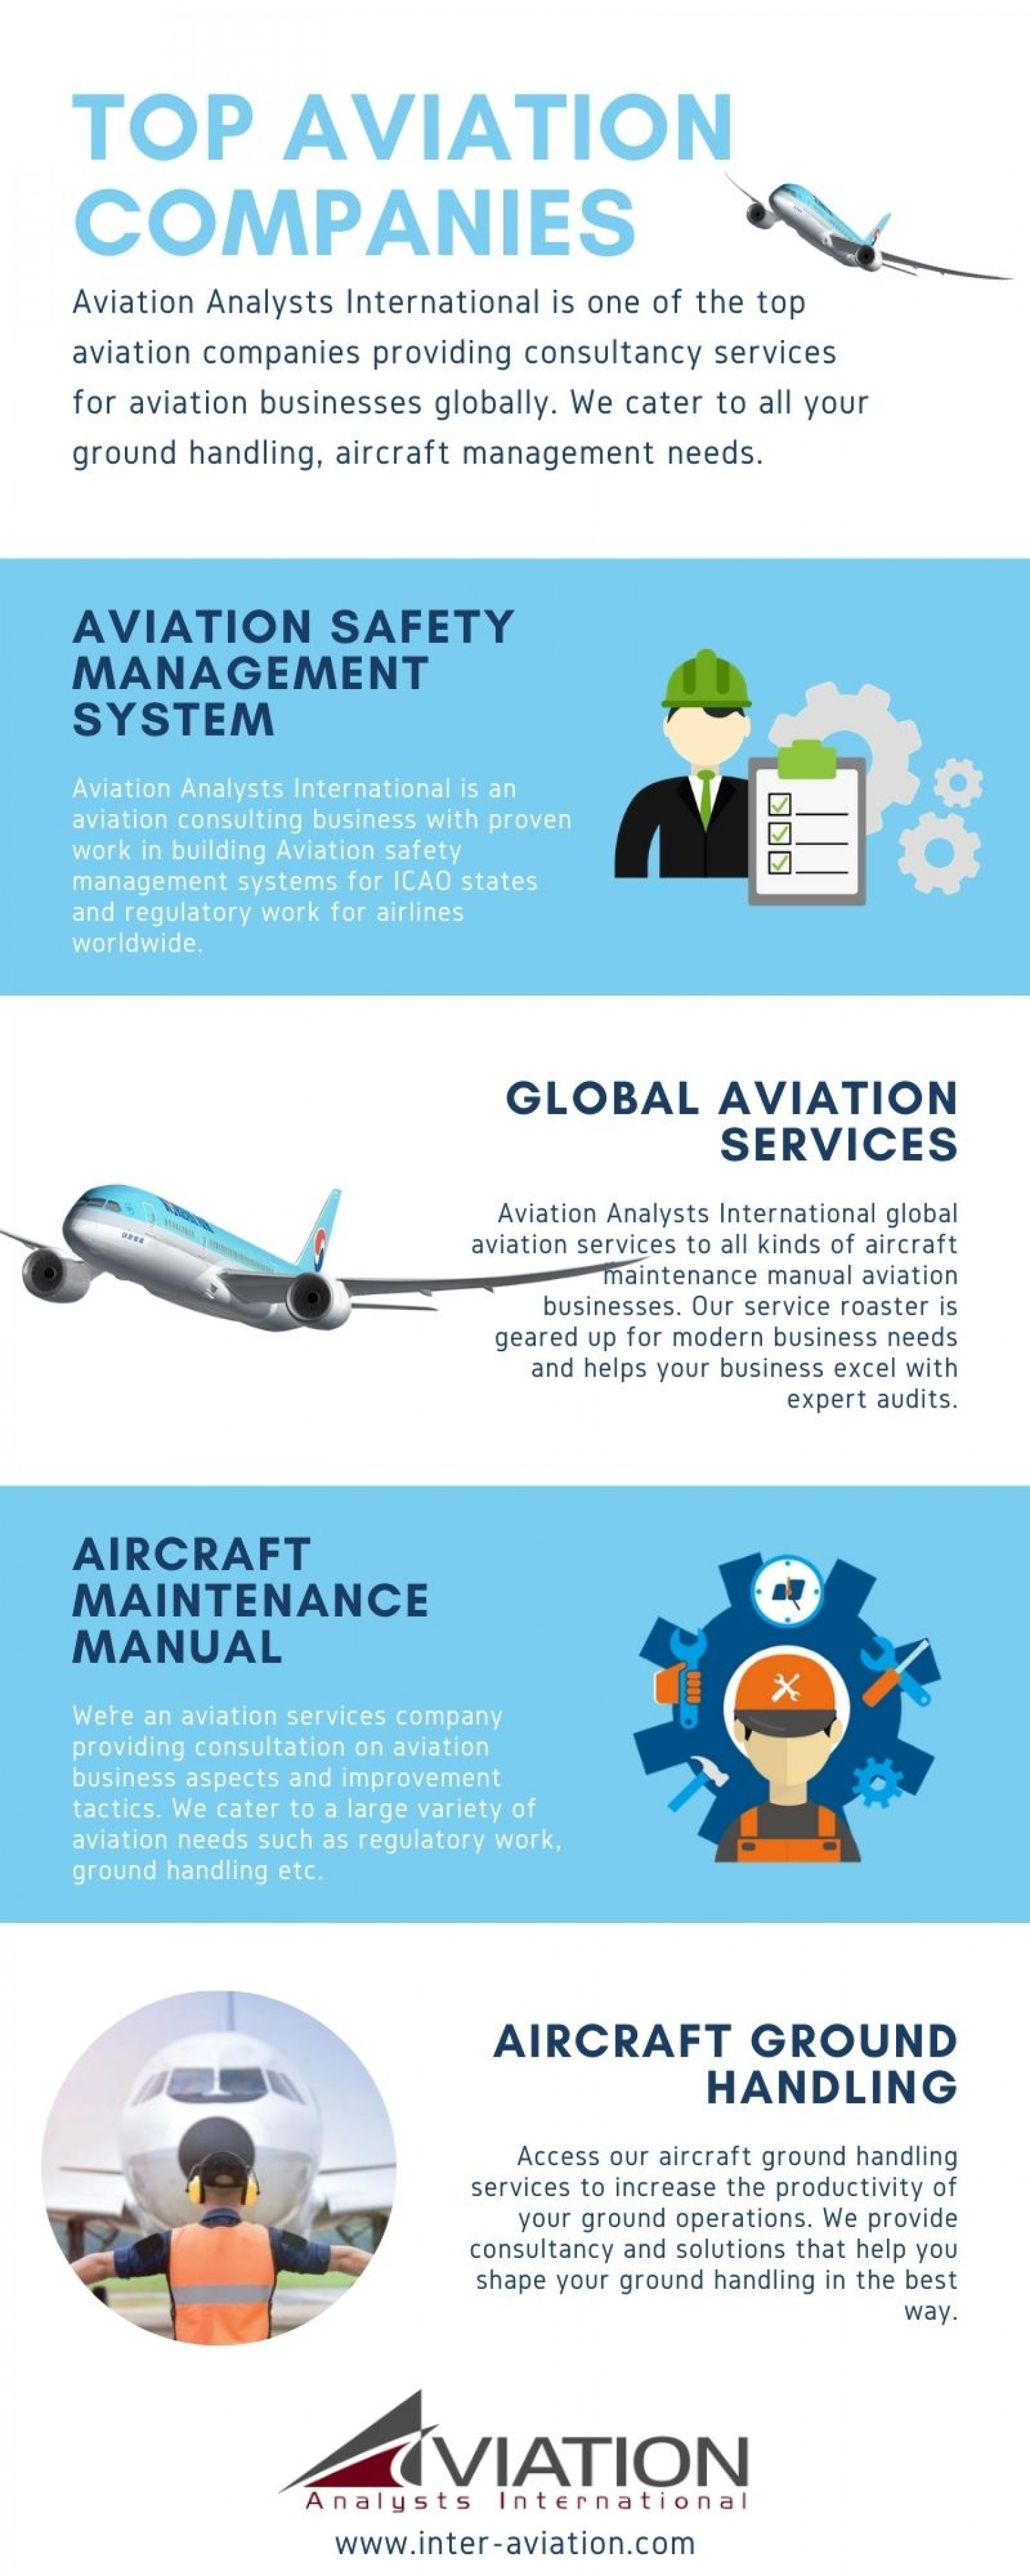 Top Aviation Companies | Aviation Analysts International  Infographic